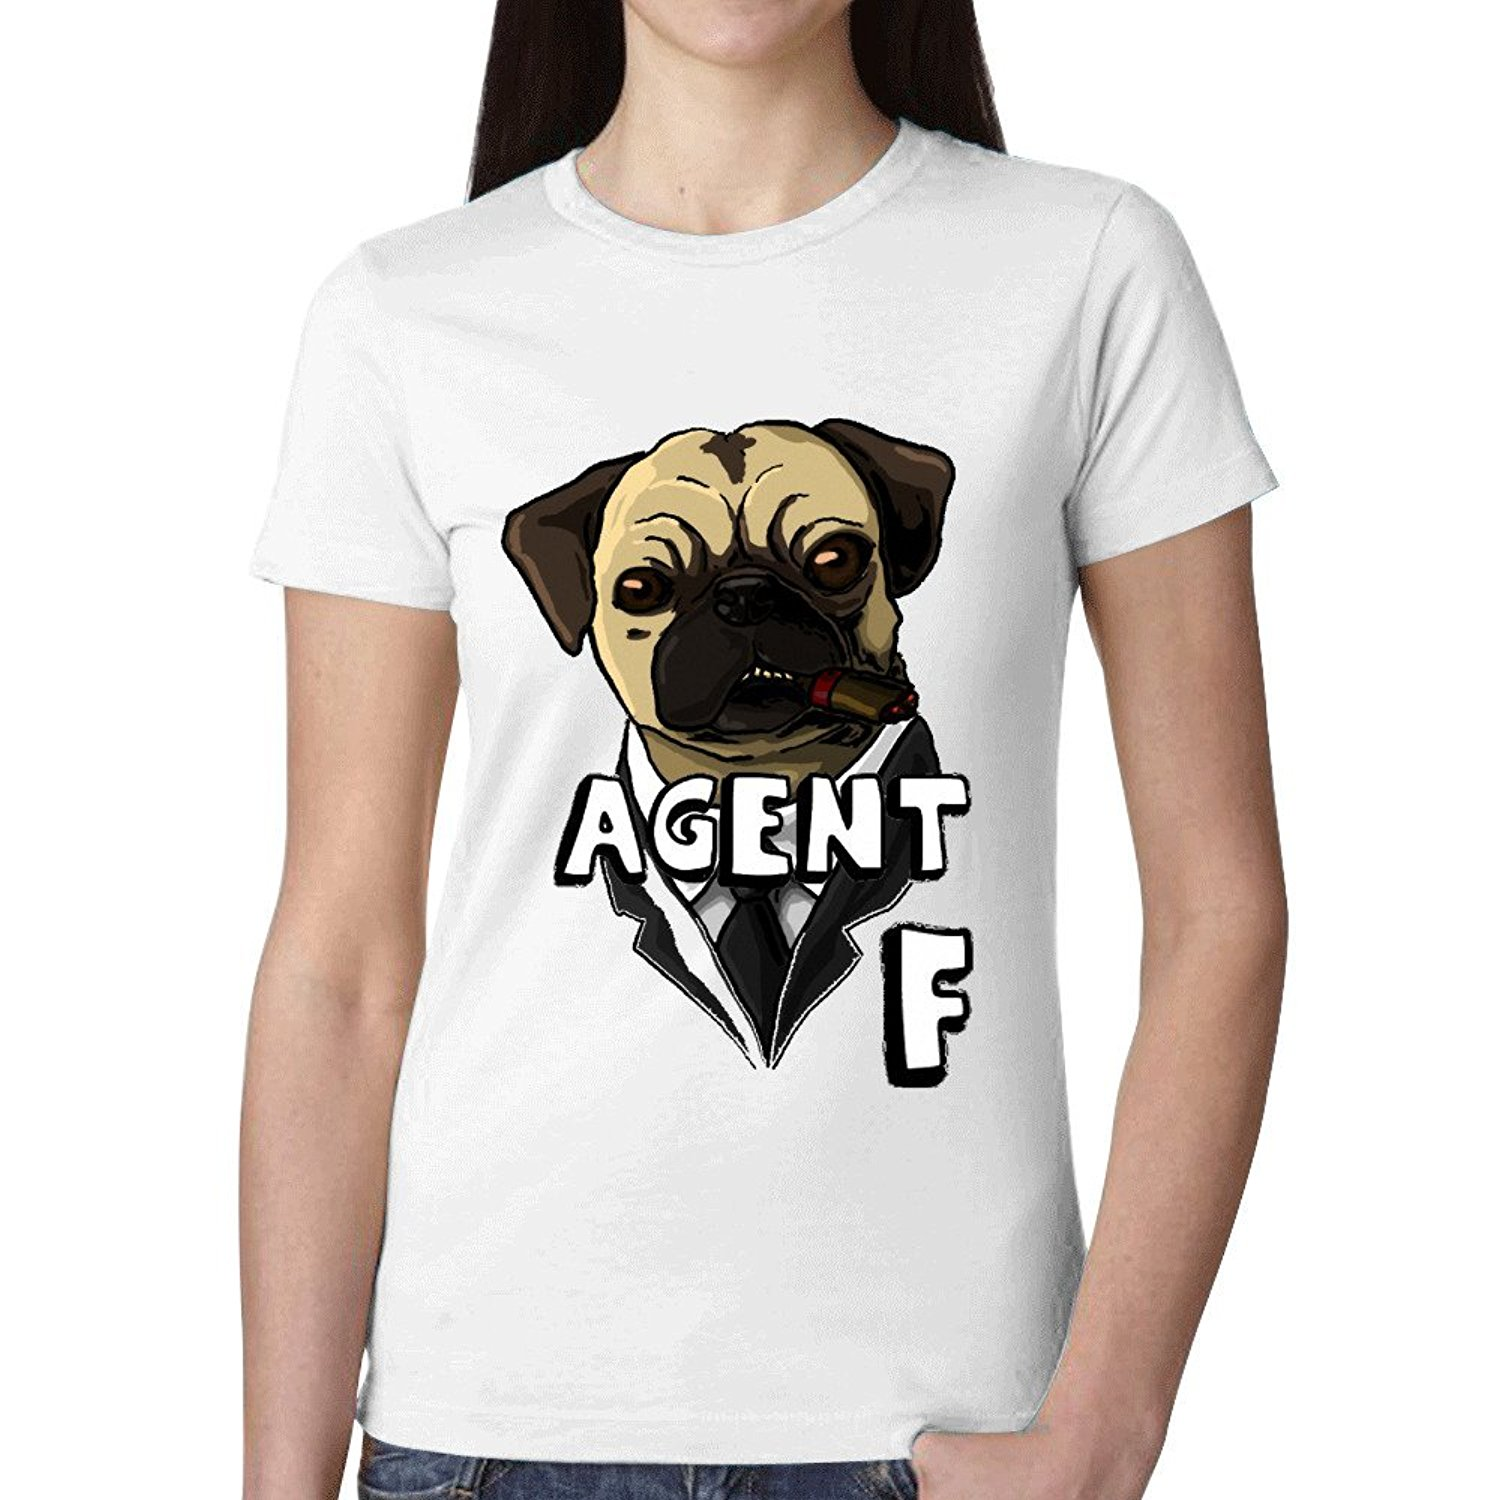 Design your own t shirt chicago - Buy Premium Fitted Quality Tee Shirts Agent F Graphic T Shirts For Women Round Neck Summer Design Your Own T Shirt Online